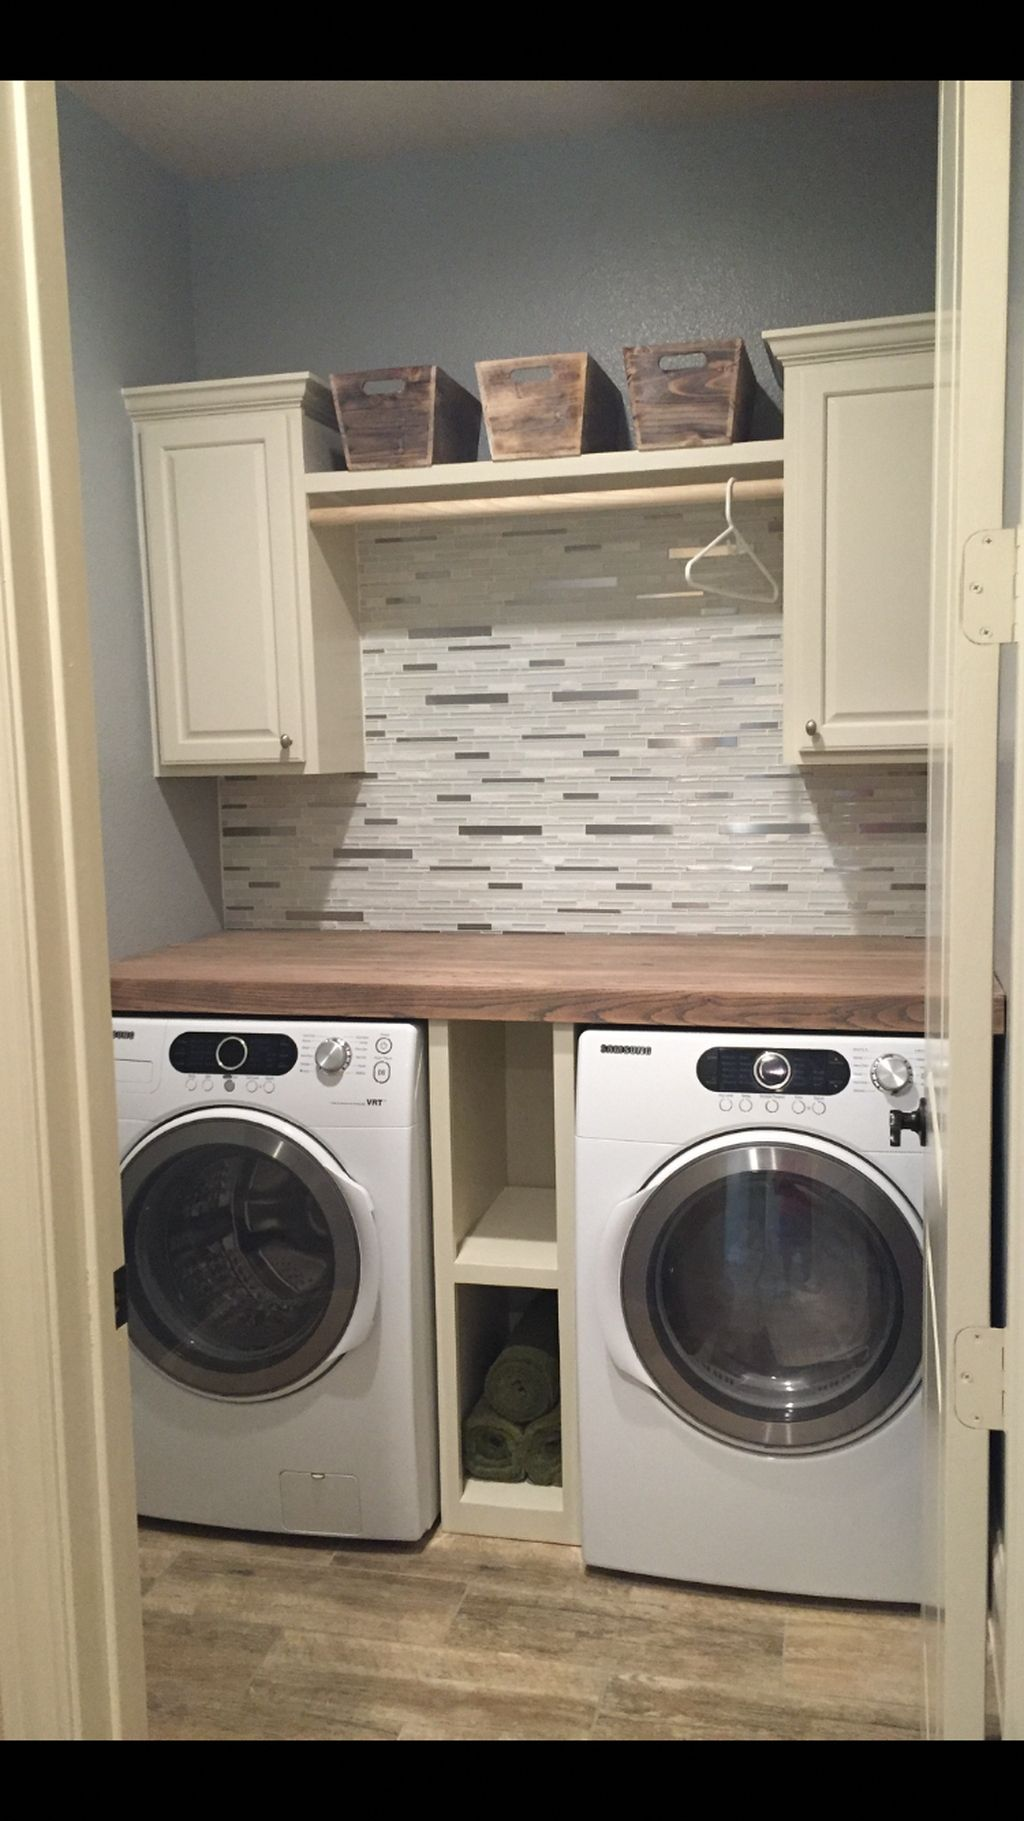 30+ Wonderful Laundry Room Storage Organization Ideas On A Budget images